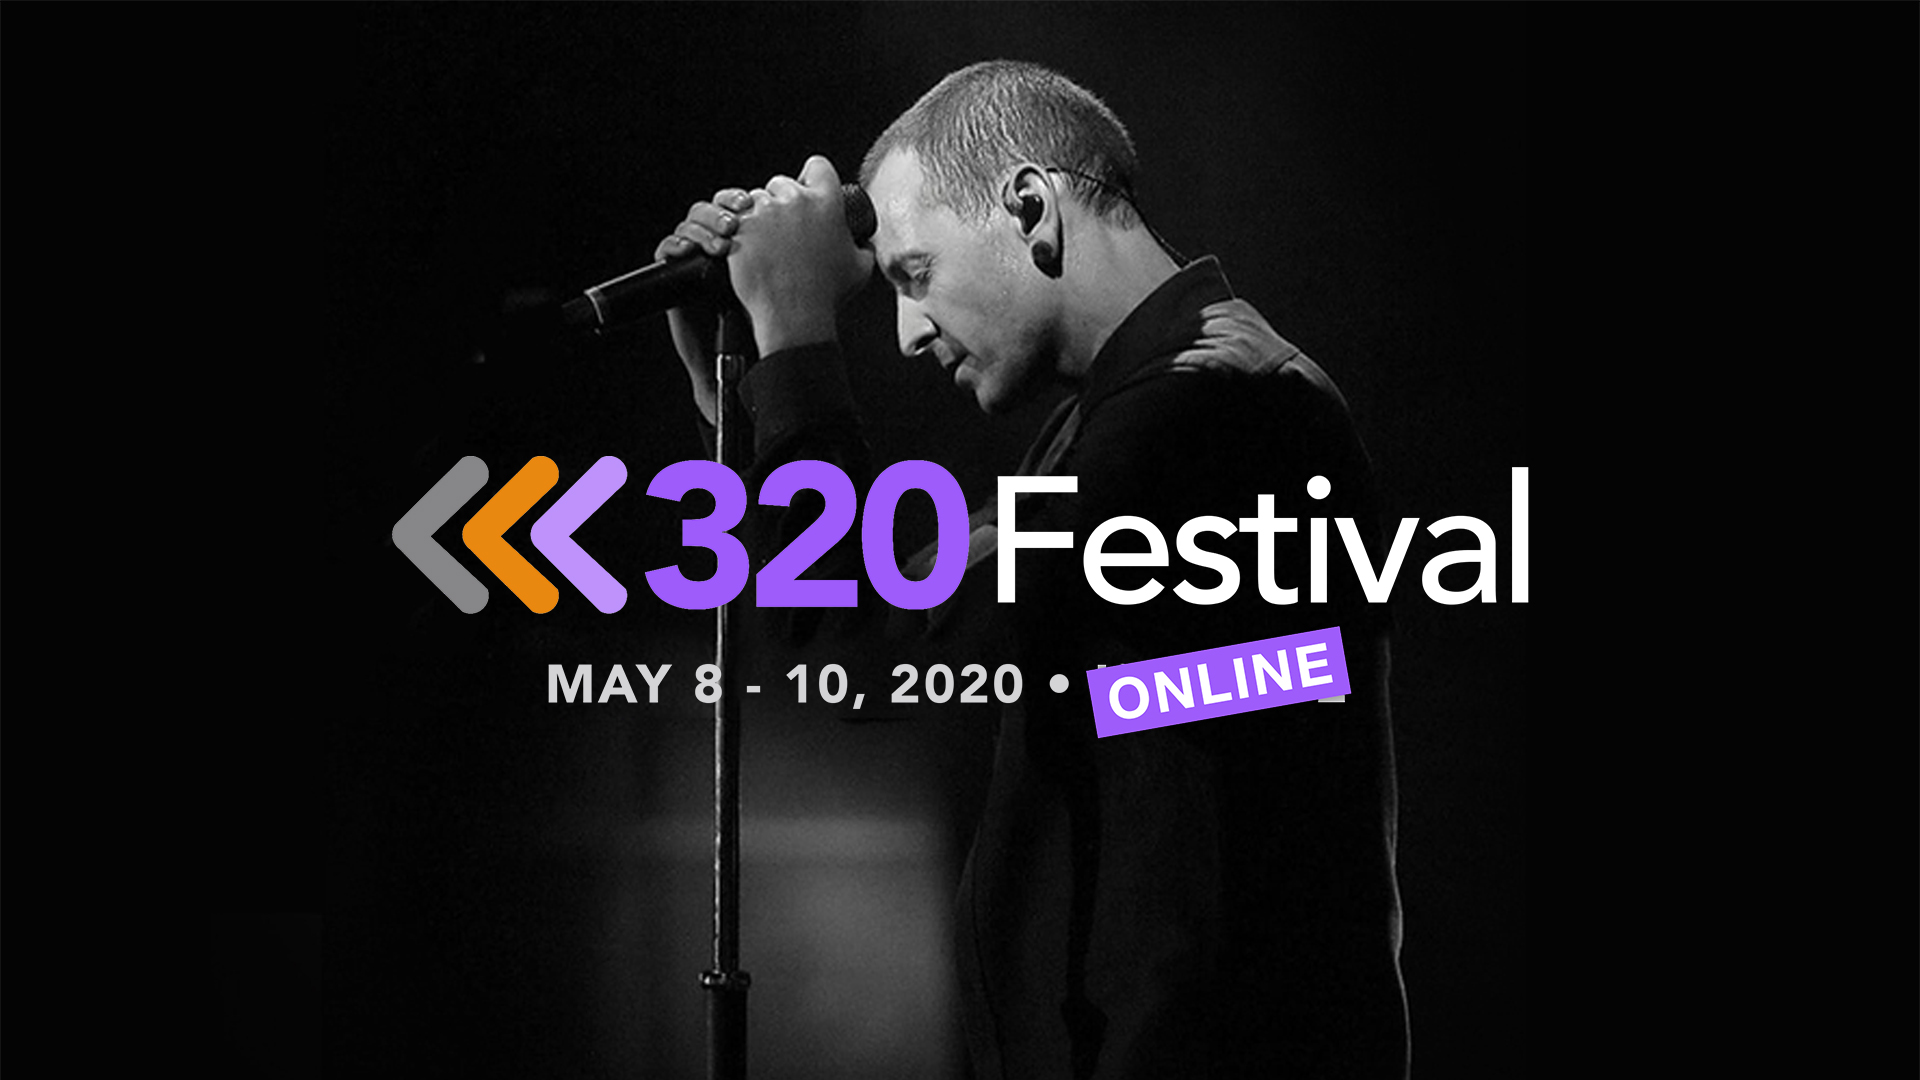 """Image of Chester Bennington with text """"320 Festival Online"""""""